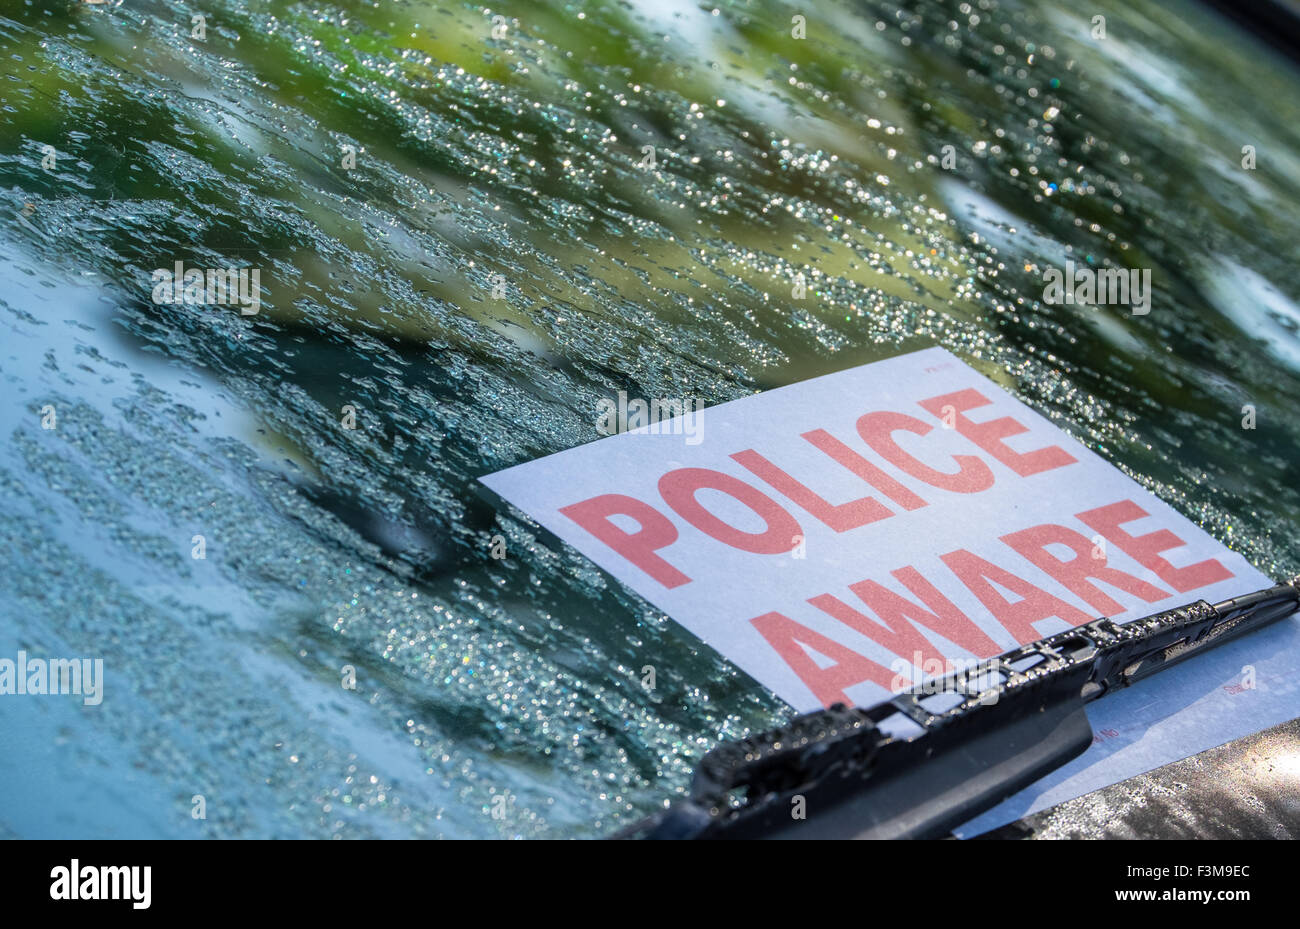 Police Aware sign on the windscreen of an abandoned car - Stock Image